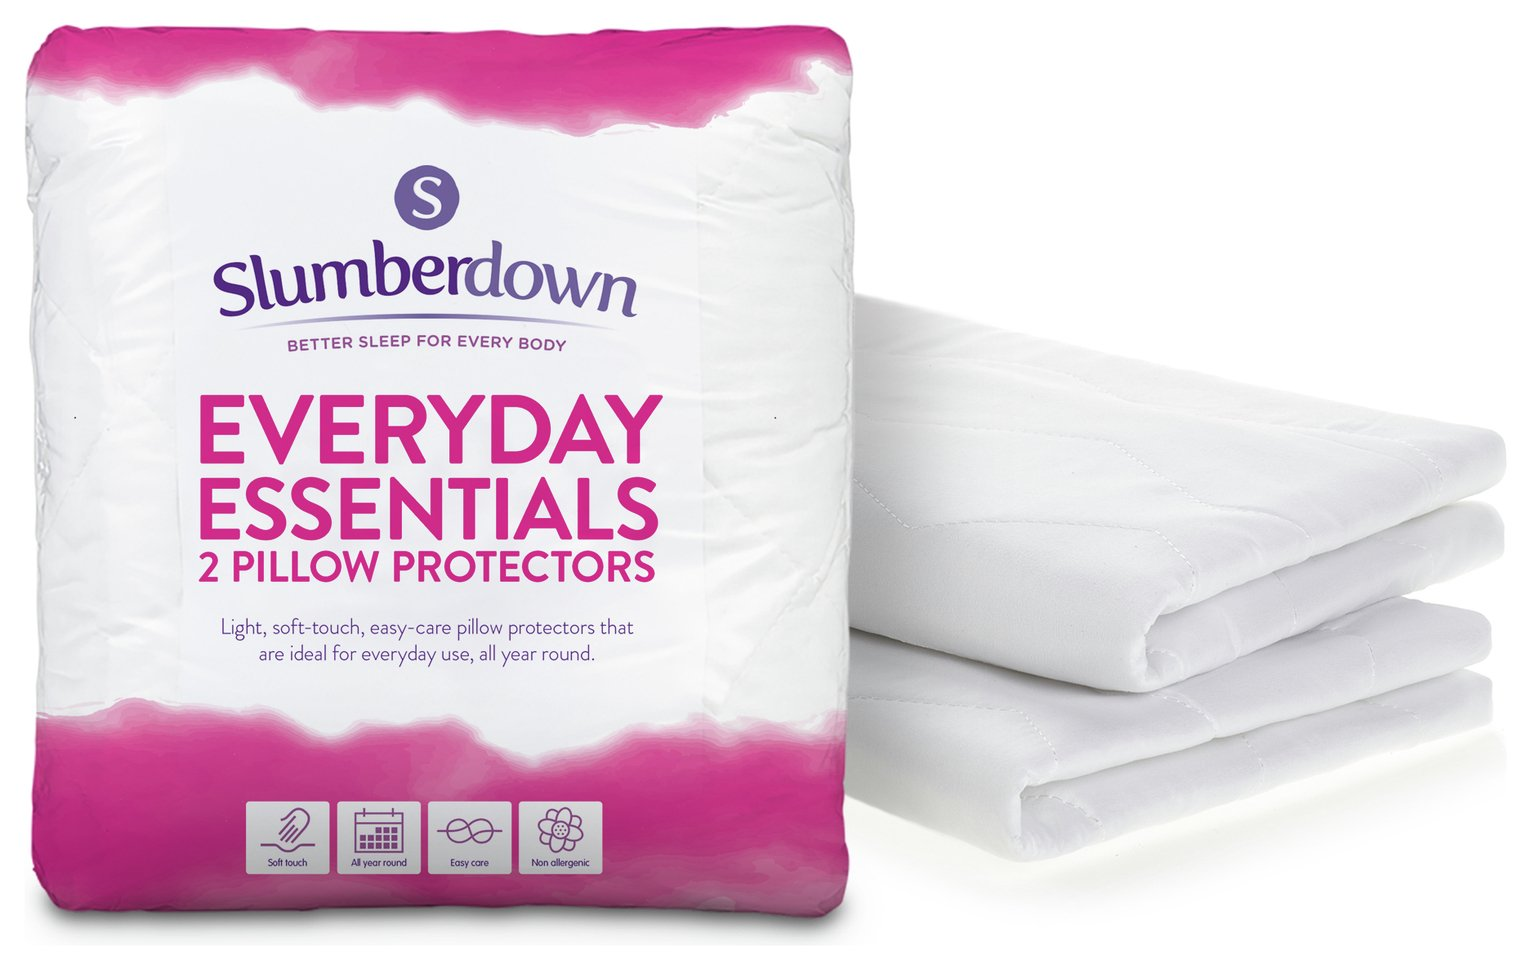 Slumberdown Everyday Essentials Pillow Protector Pair review